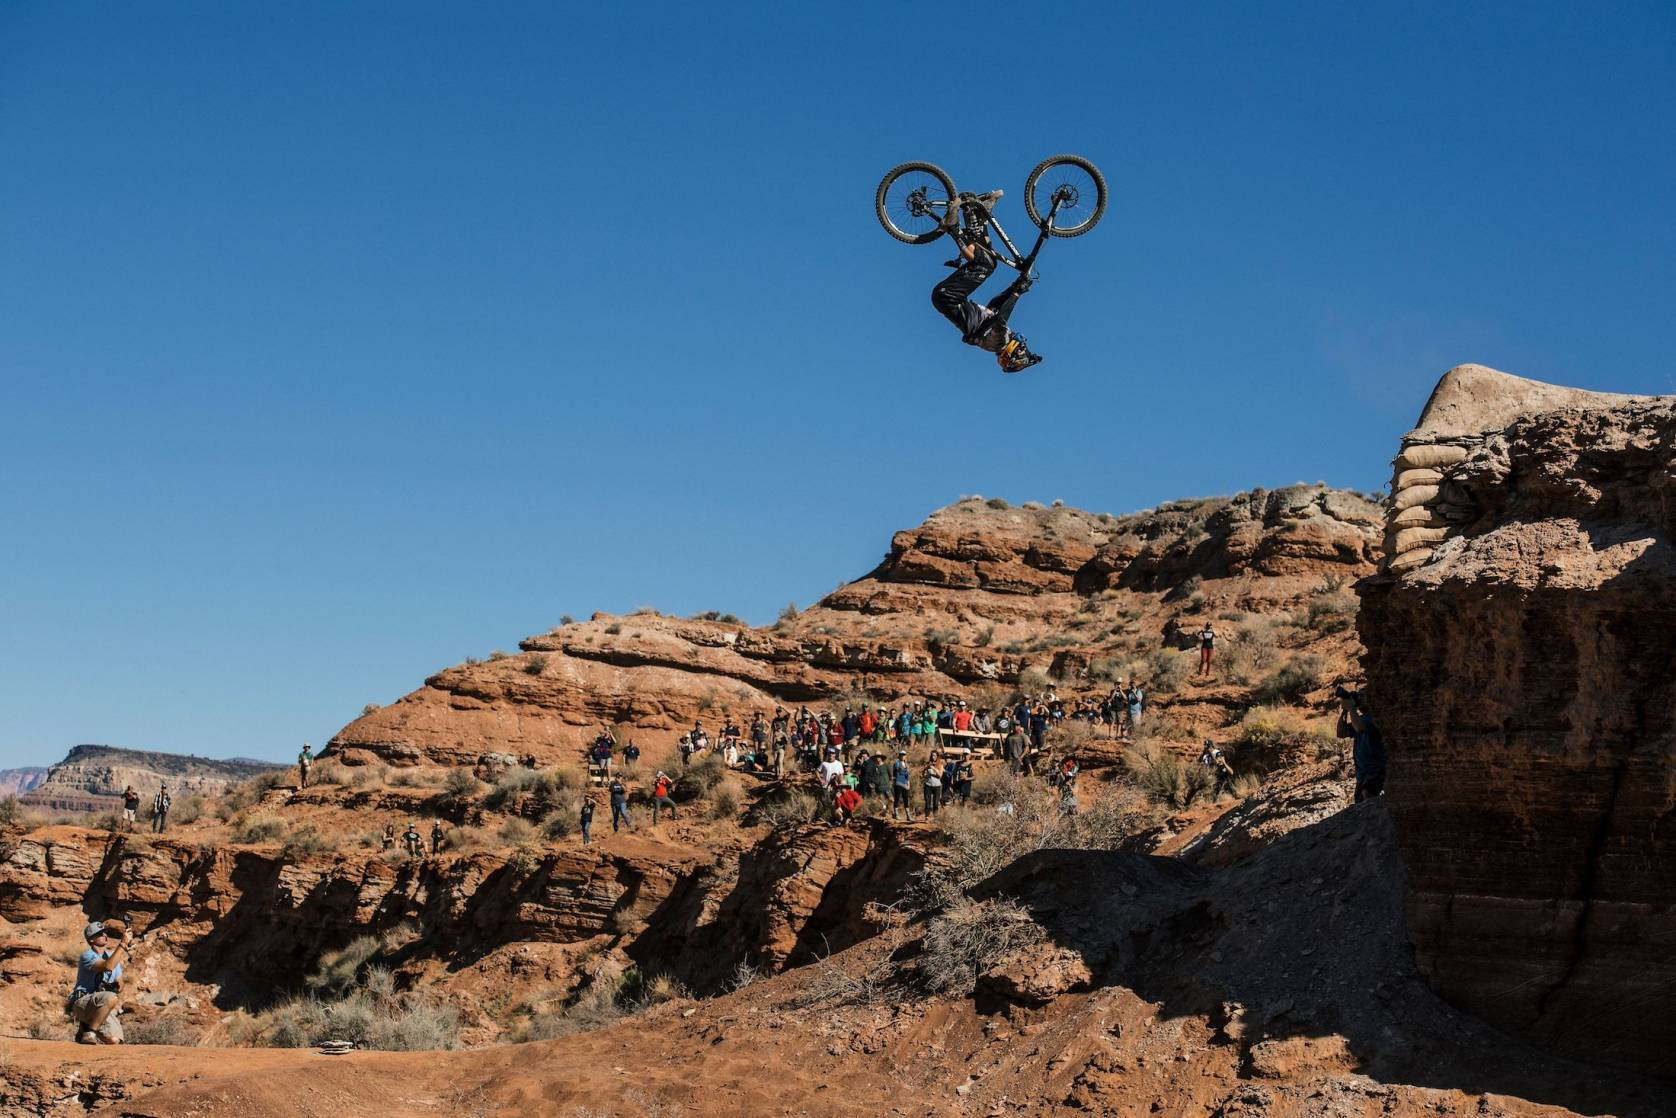 man doing backflip on bike midair in Utah